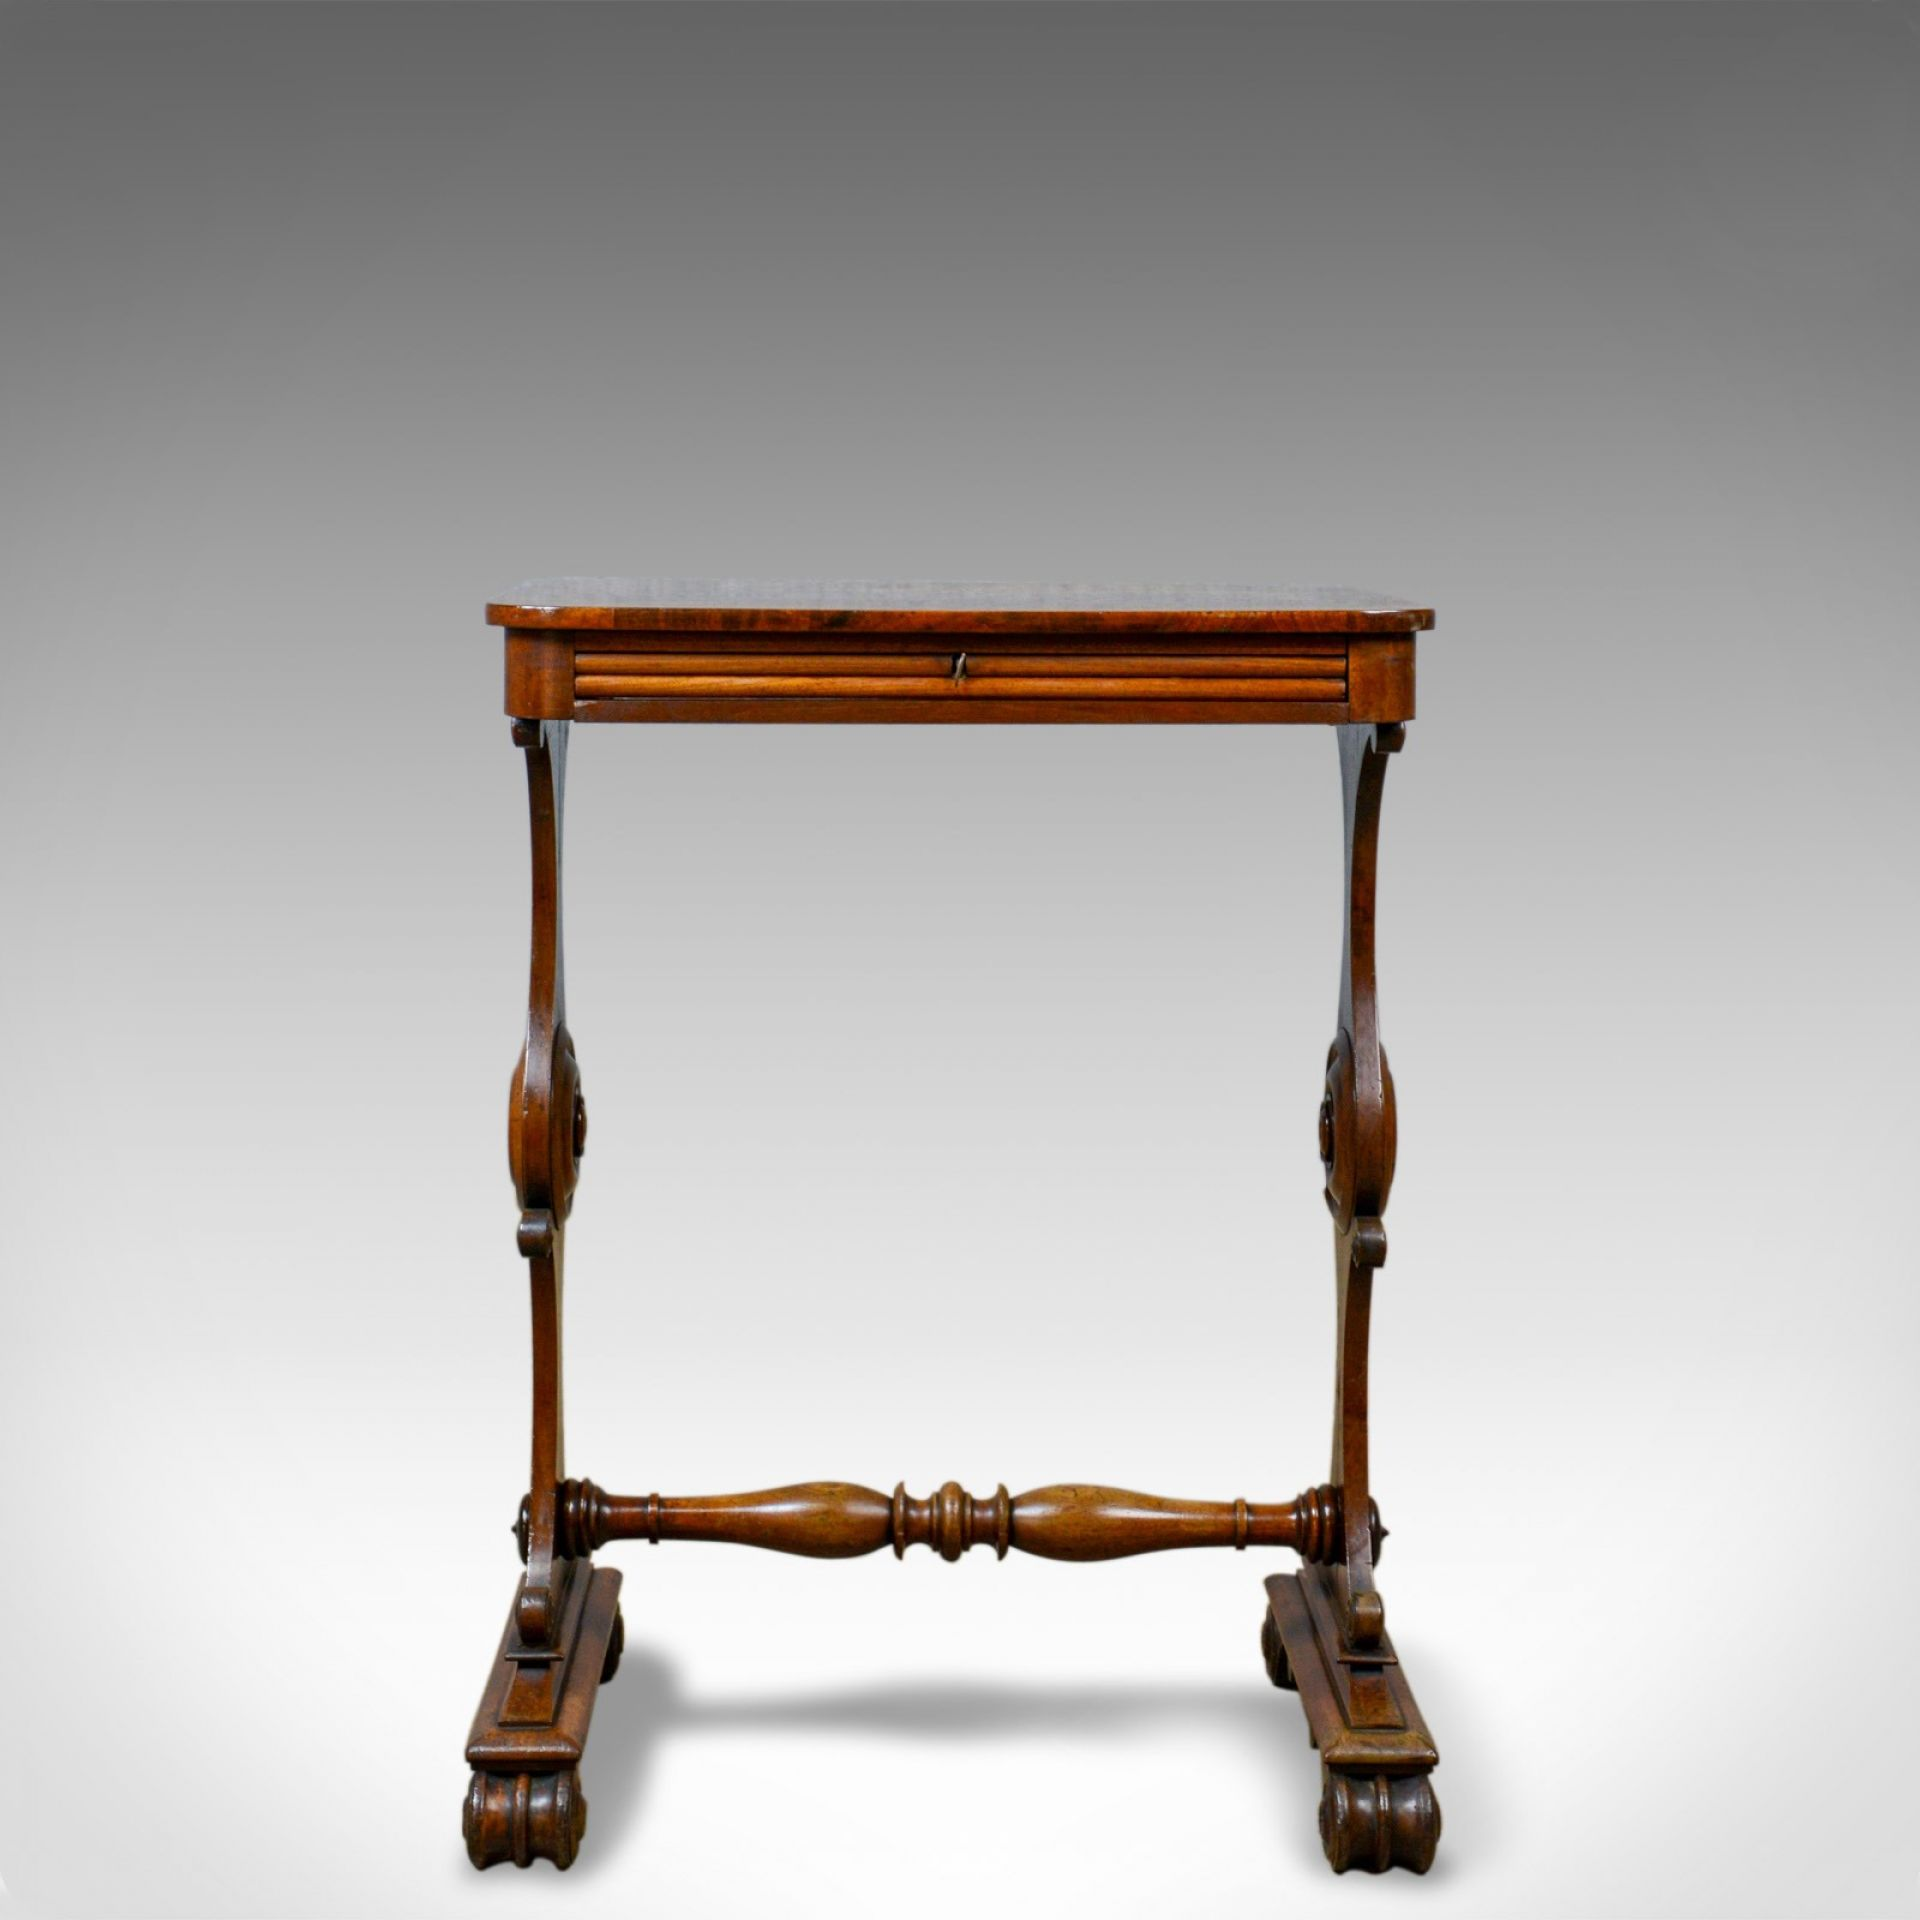 Antique Side Table, English, William IV, Companion, Mahogany, Circa 1835